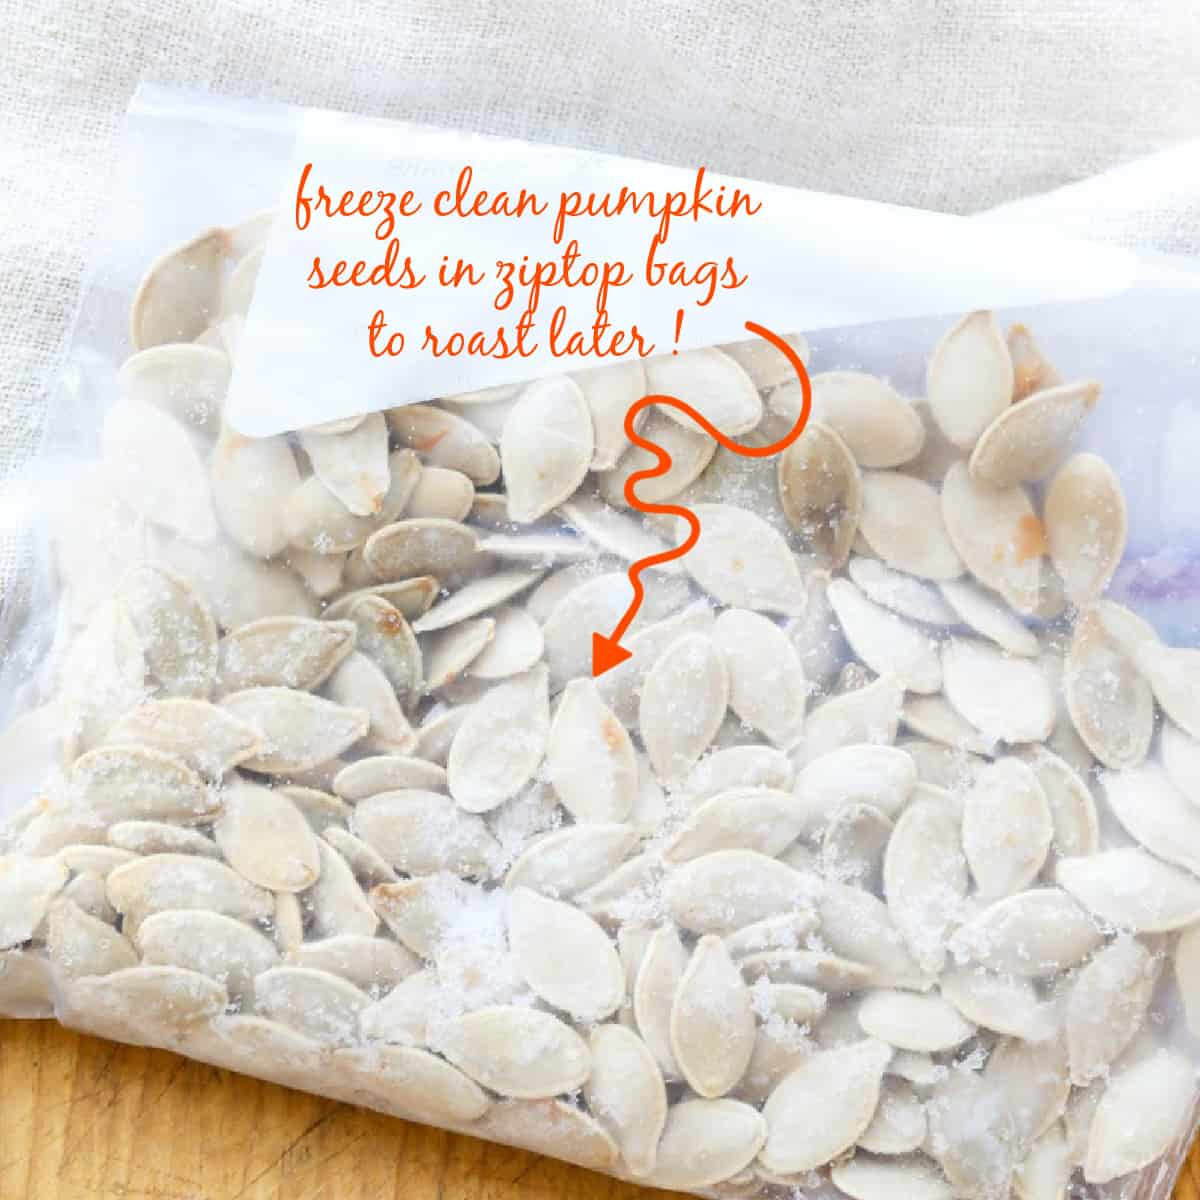 A zip-top bag filled with clean pumpkin seeds to use later in a roast pumpkin seed recipe.